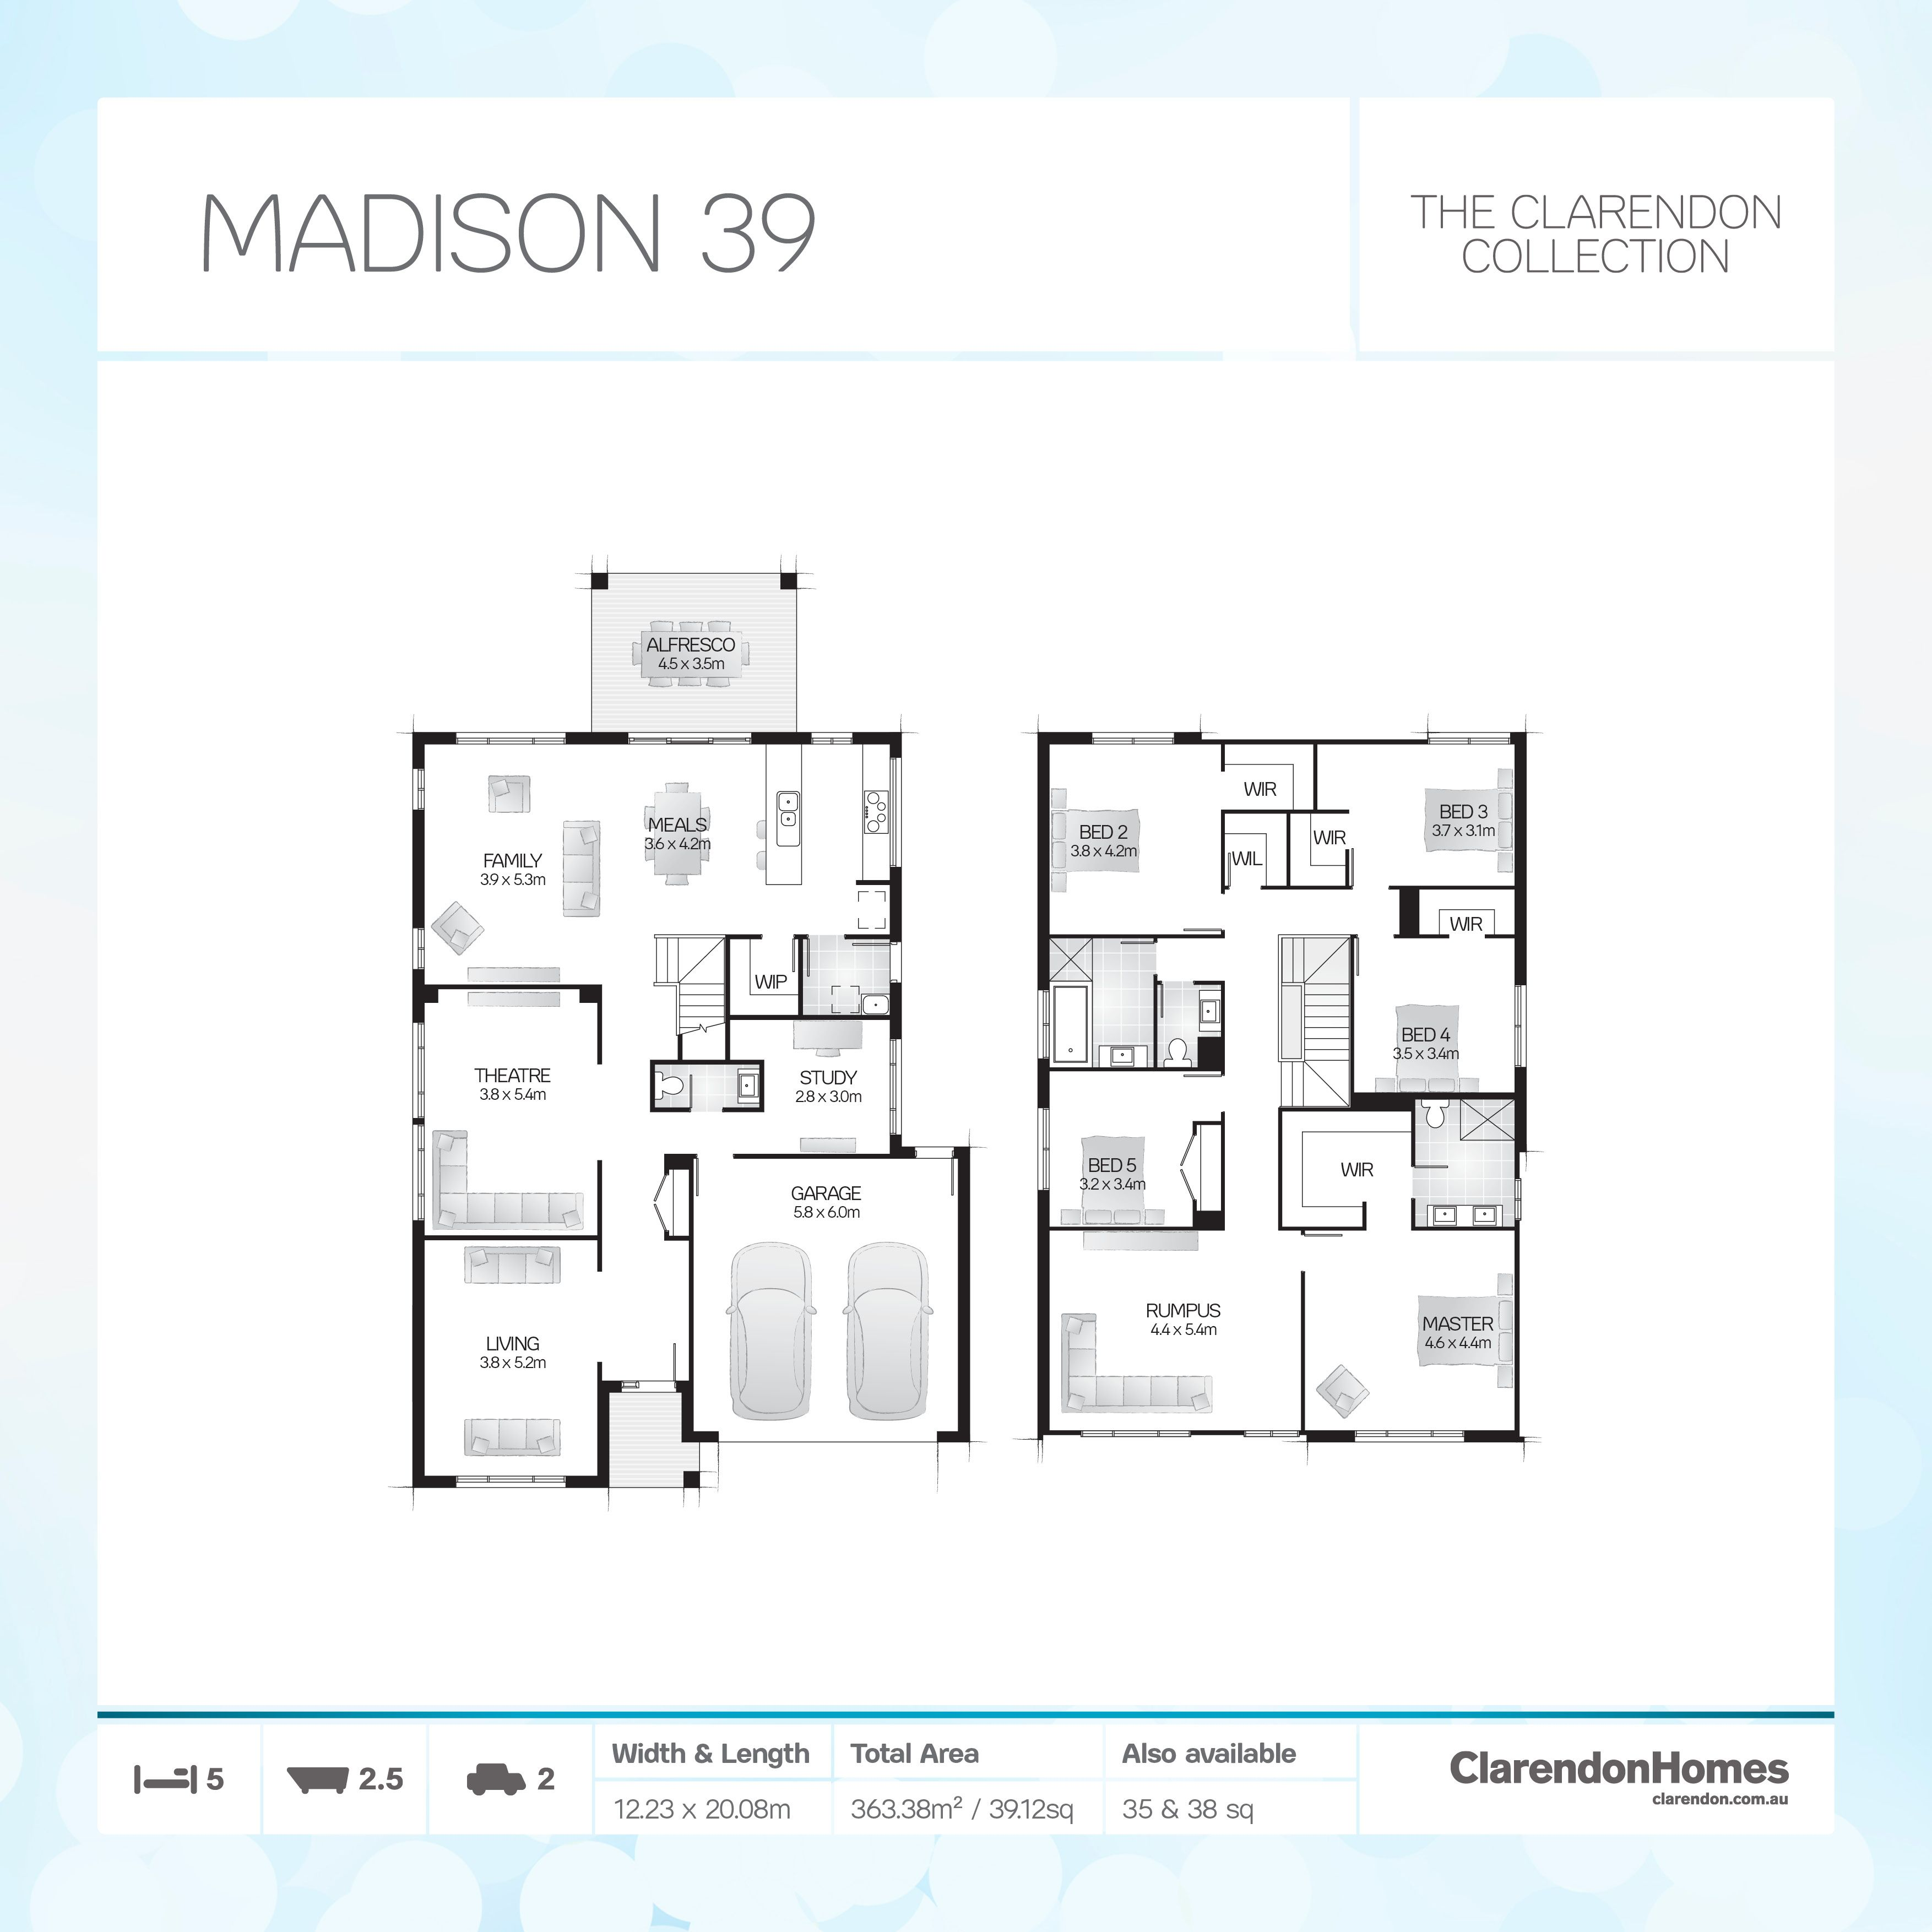 Clarendon Homes. Madison 39. A Showcase Of Exquisite Style.